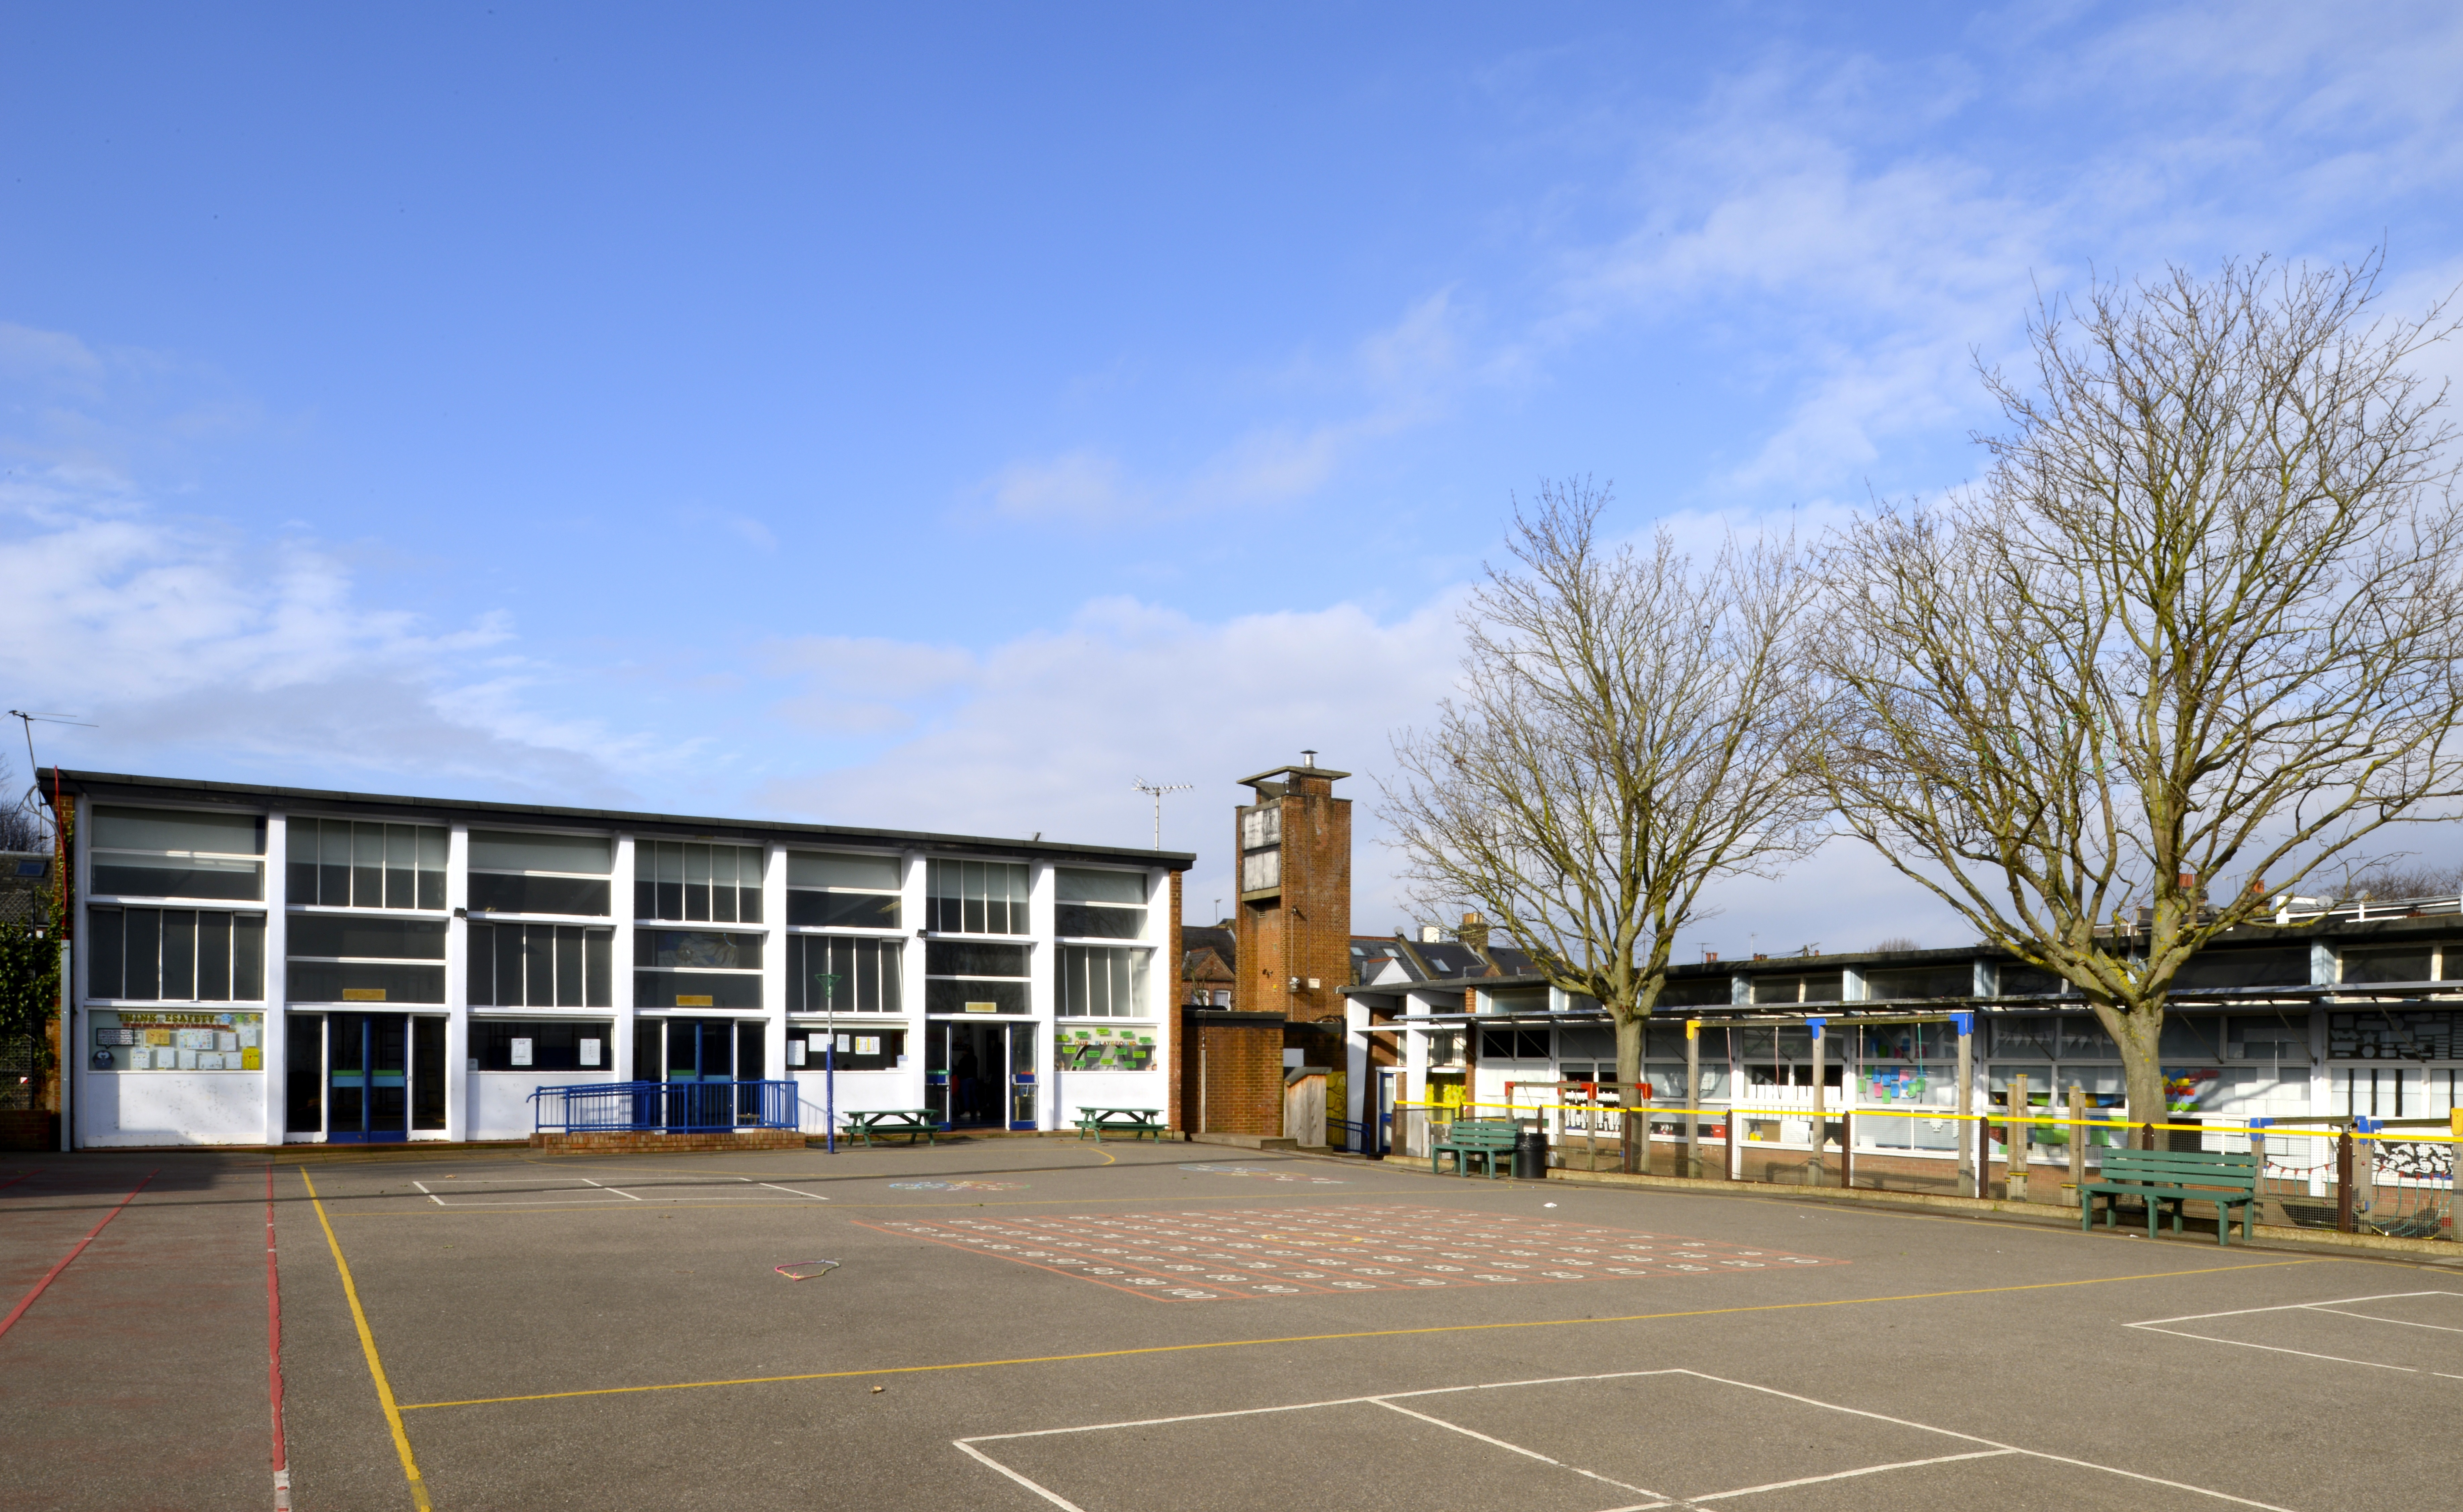 Brandelhow School, Image courtesy Elain Harwood